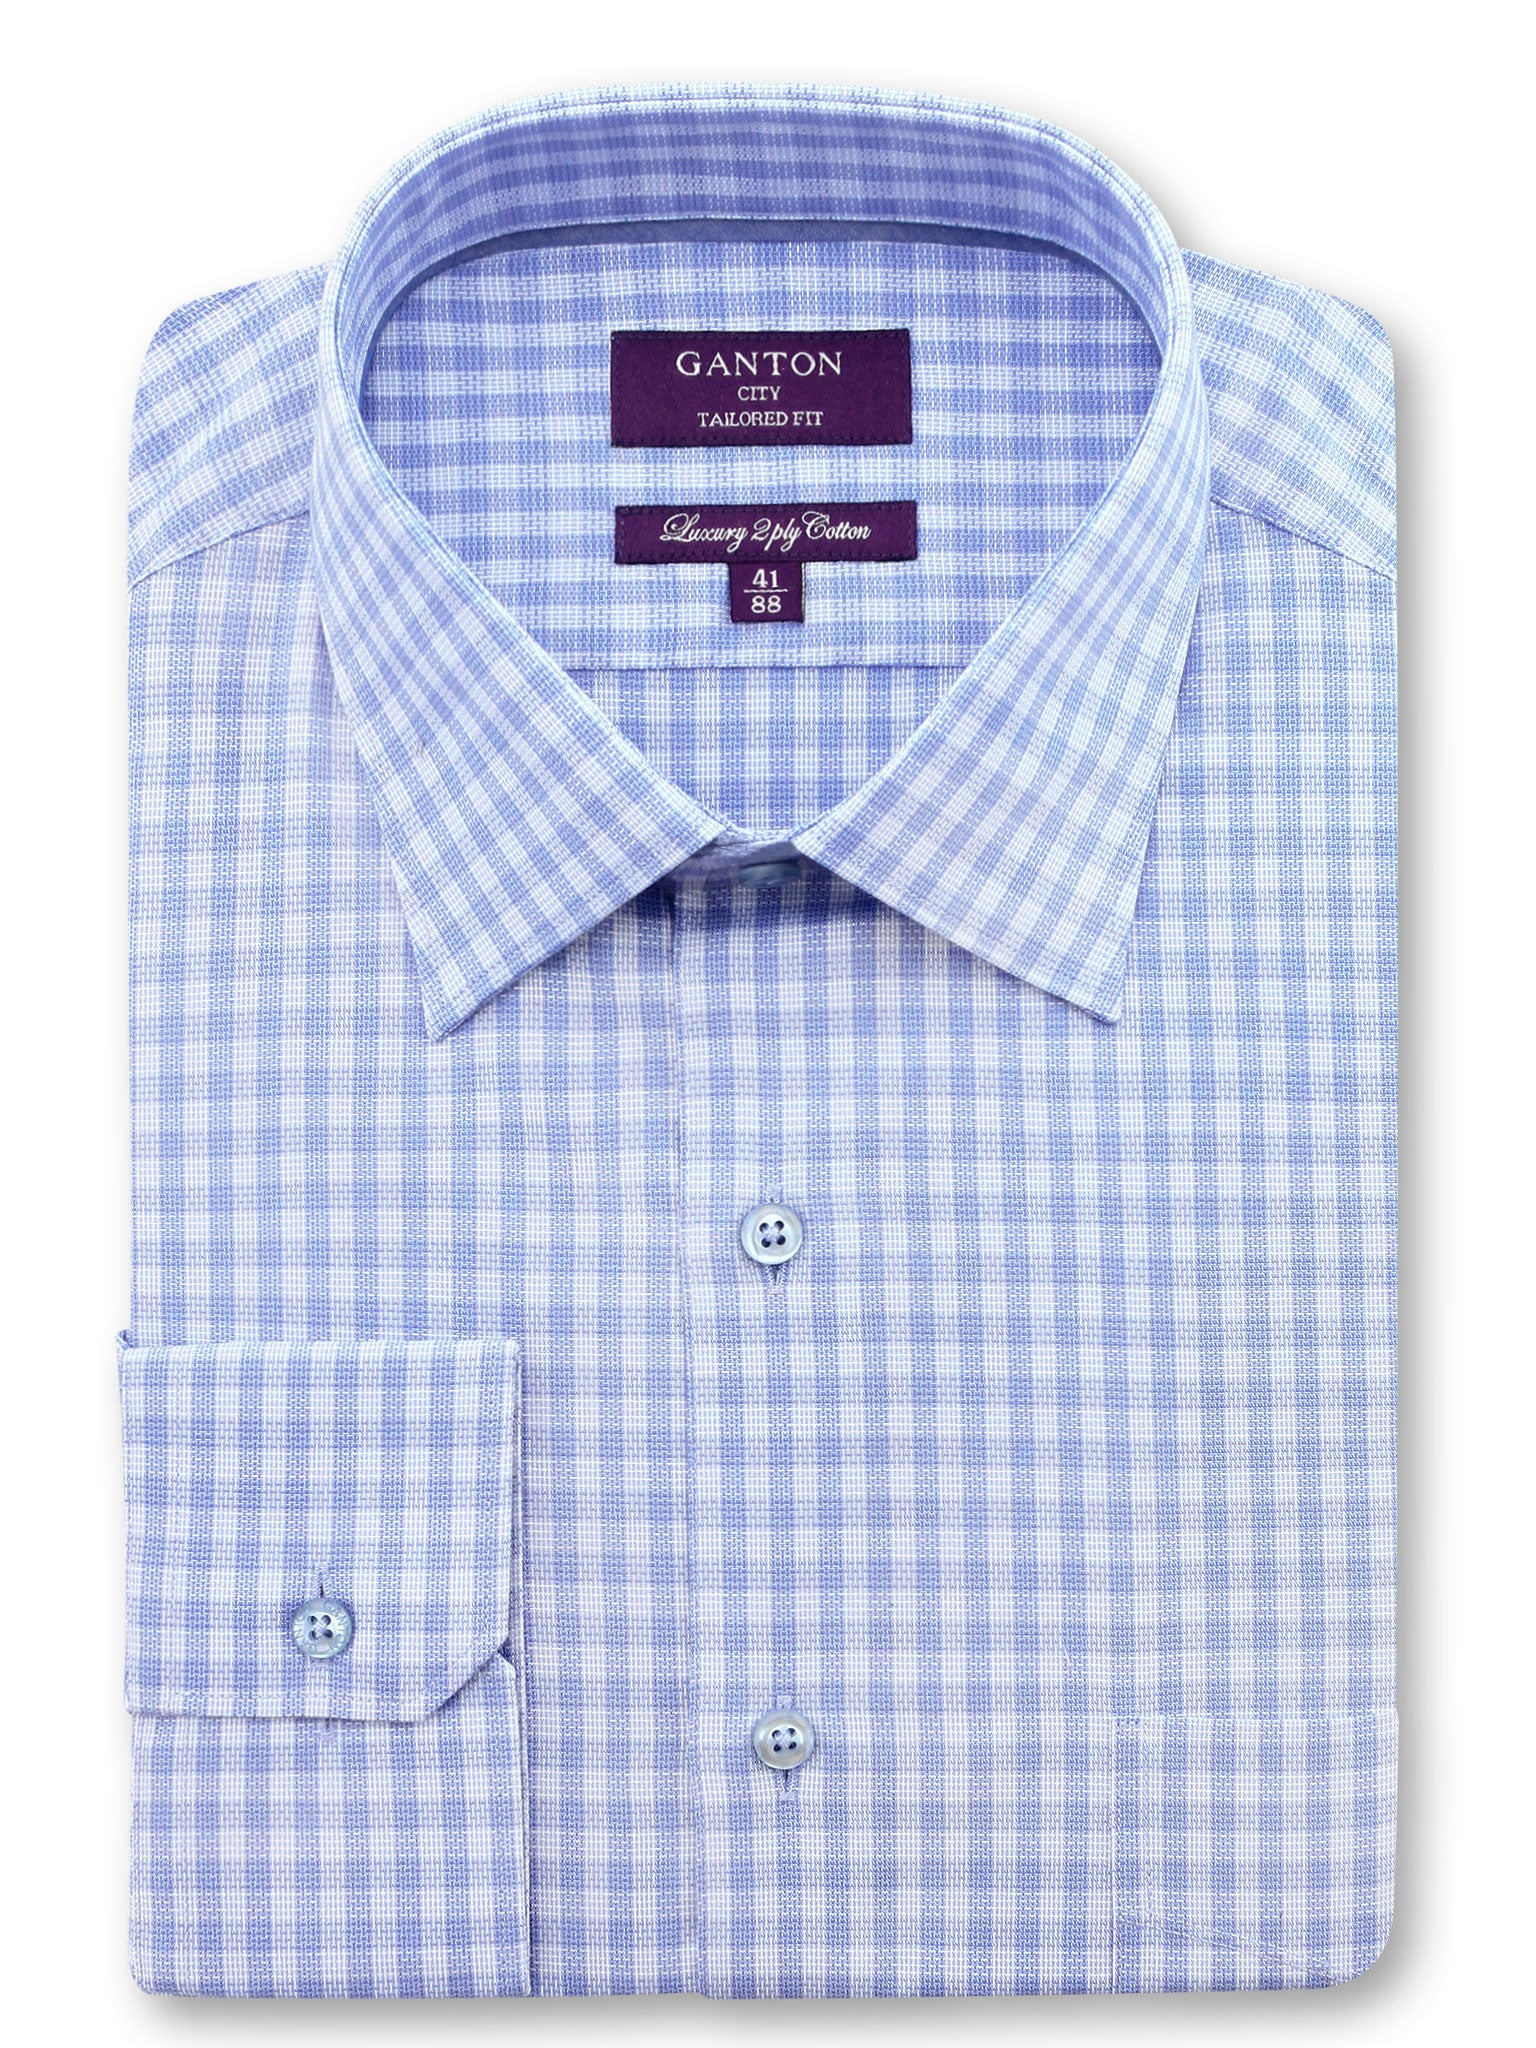 Blue Check Tailored Fit Hendrix Luxury 2 Ply Cotton Shirt